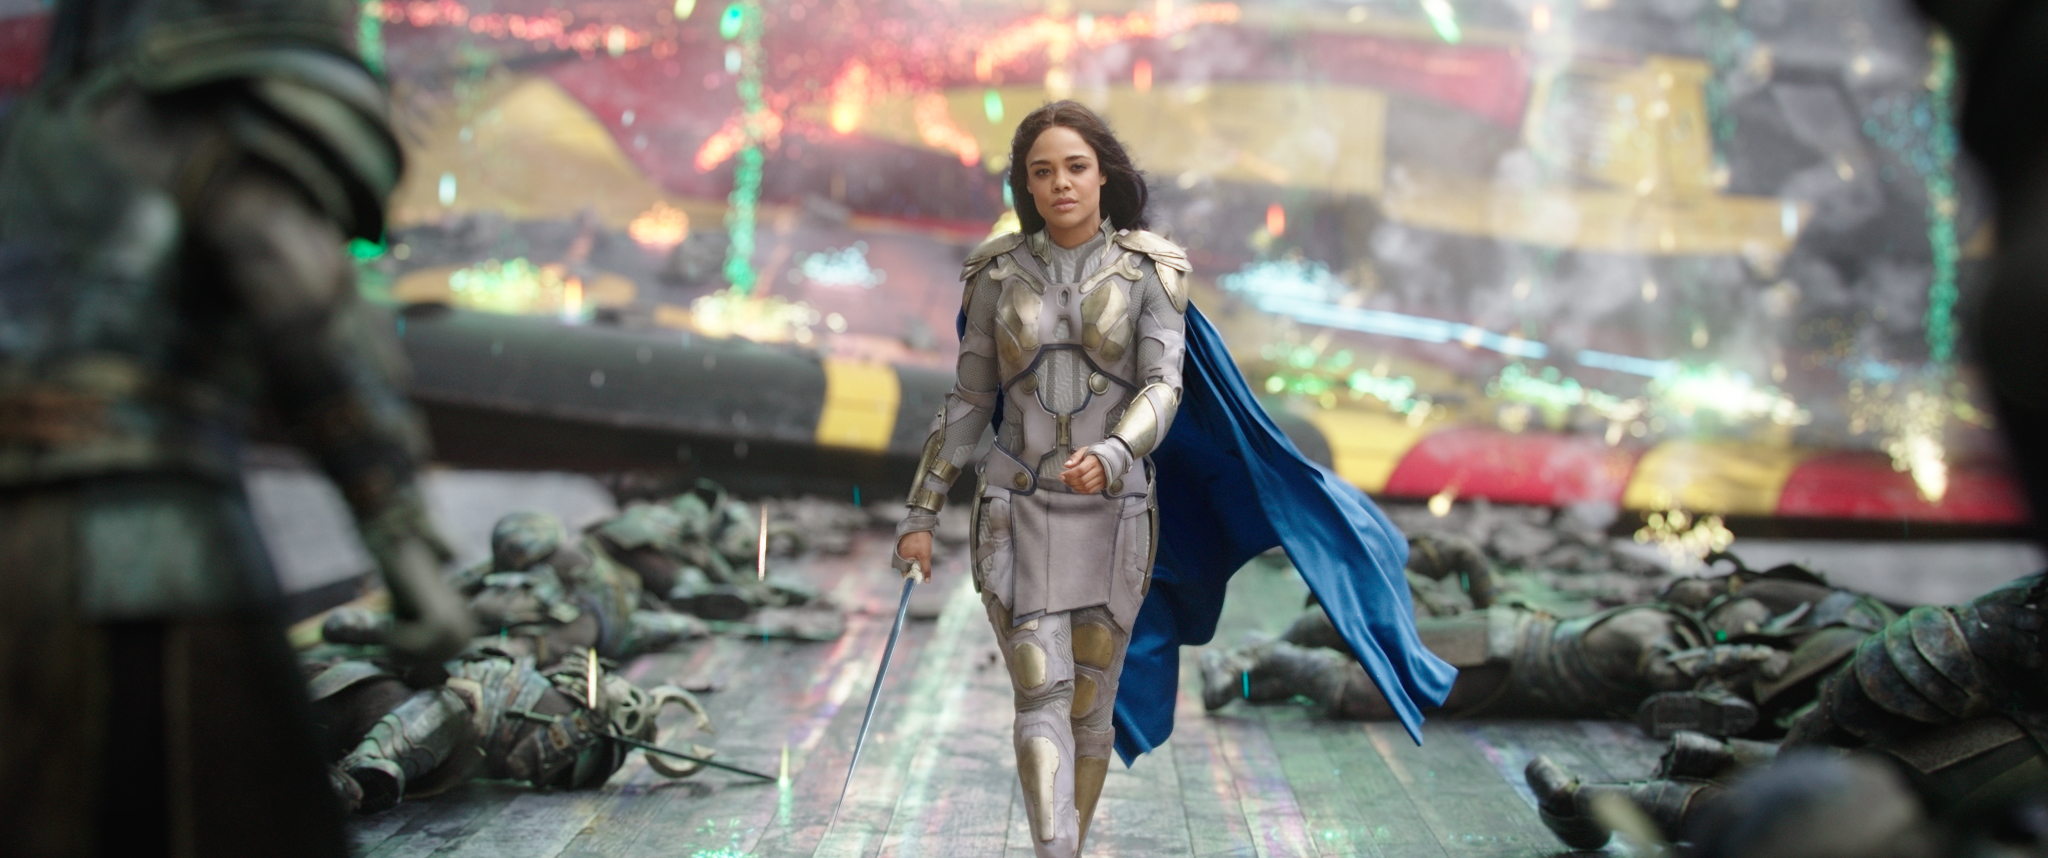 This New Queer Comic Book Character Is Based Off of Tessa Thompson's Valkyrie in 'Thor'